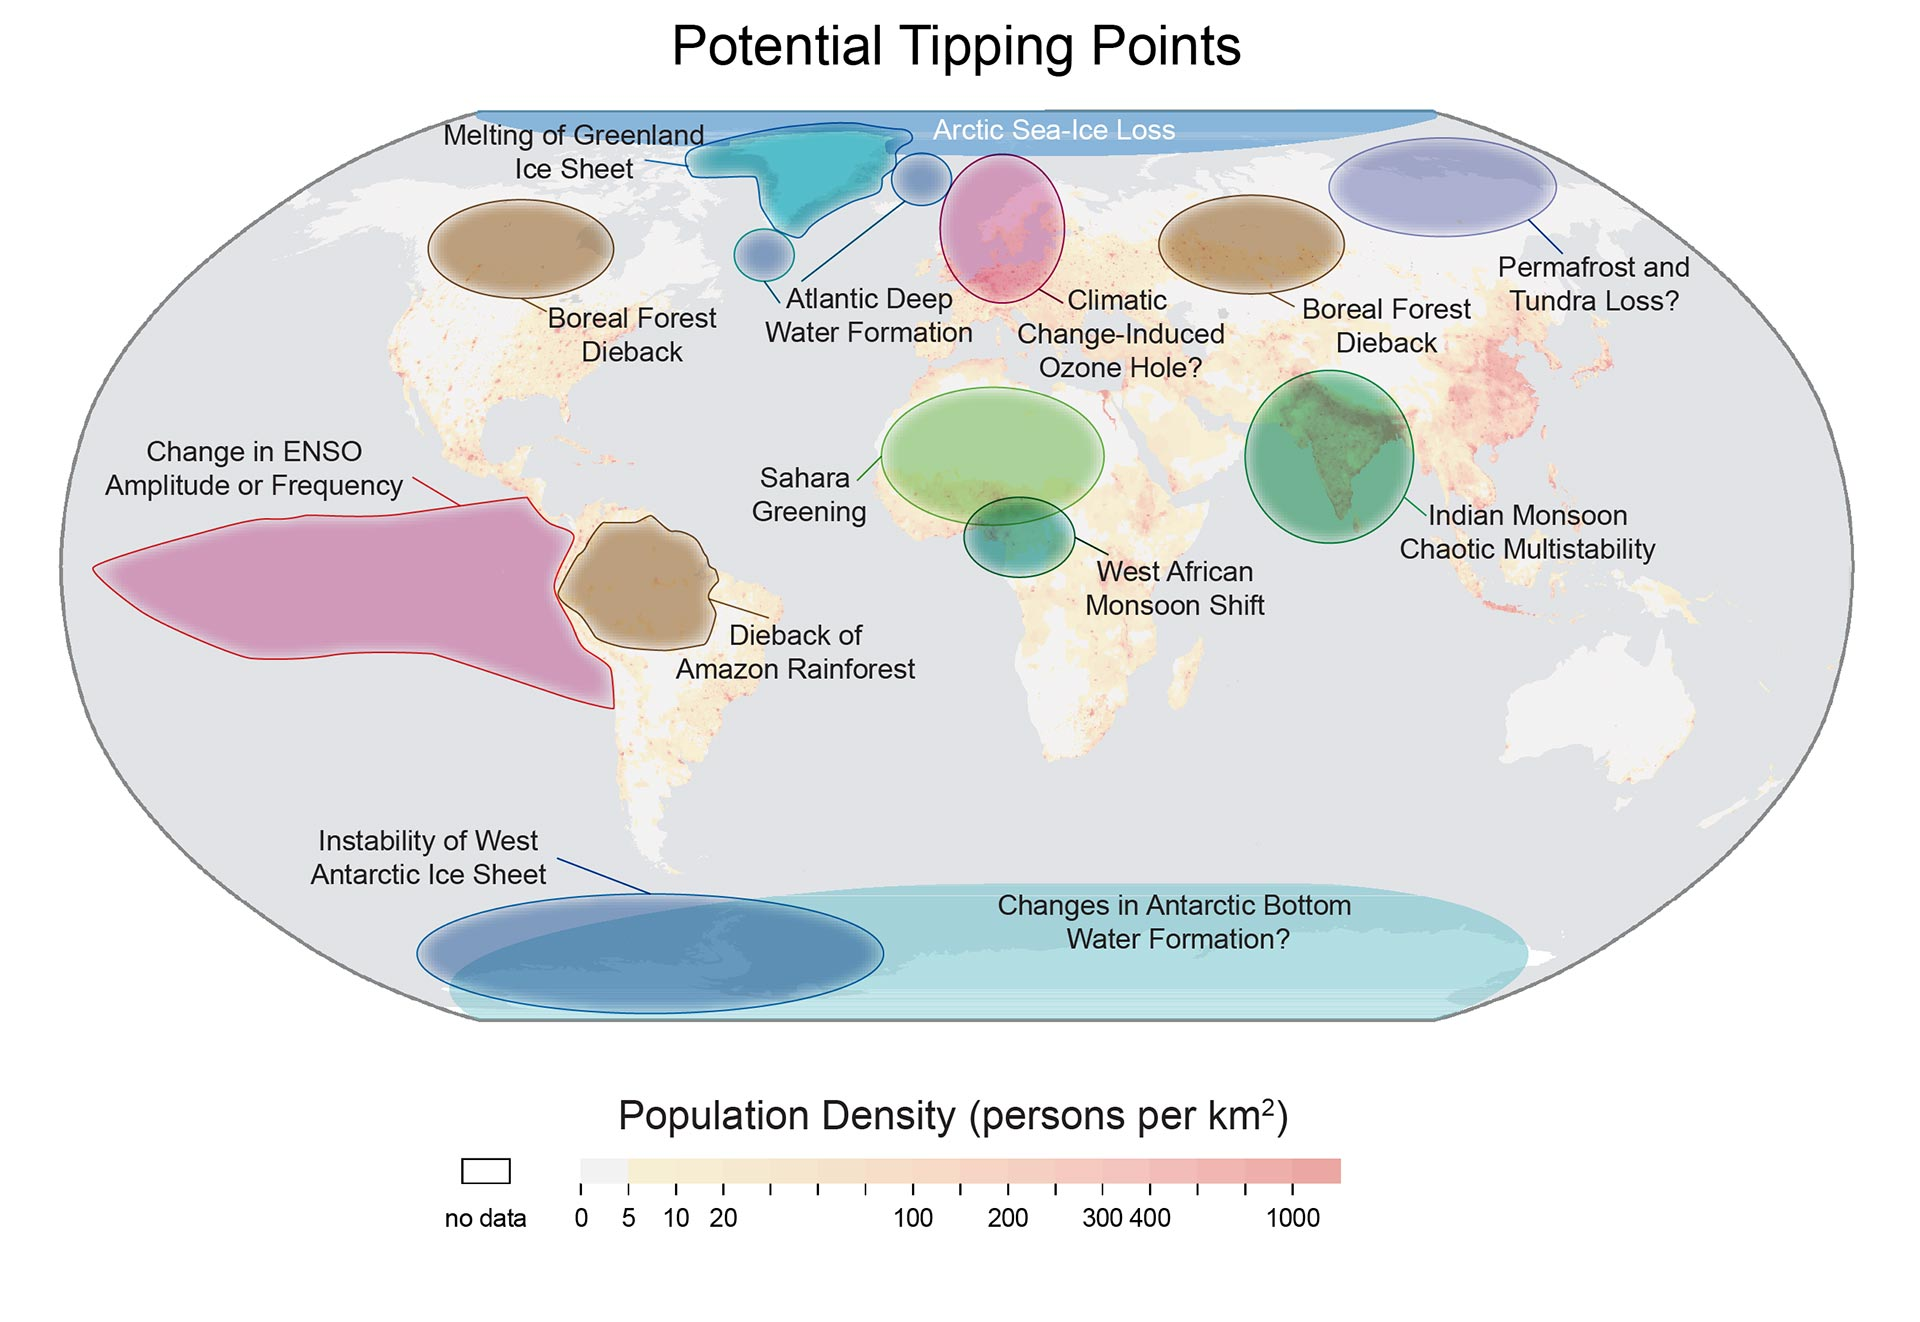 Potential Tipping Points